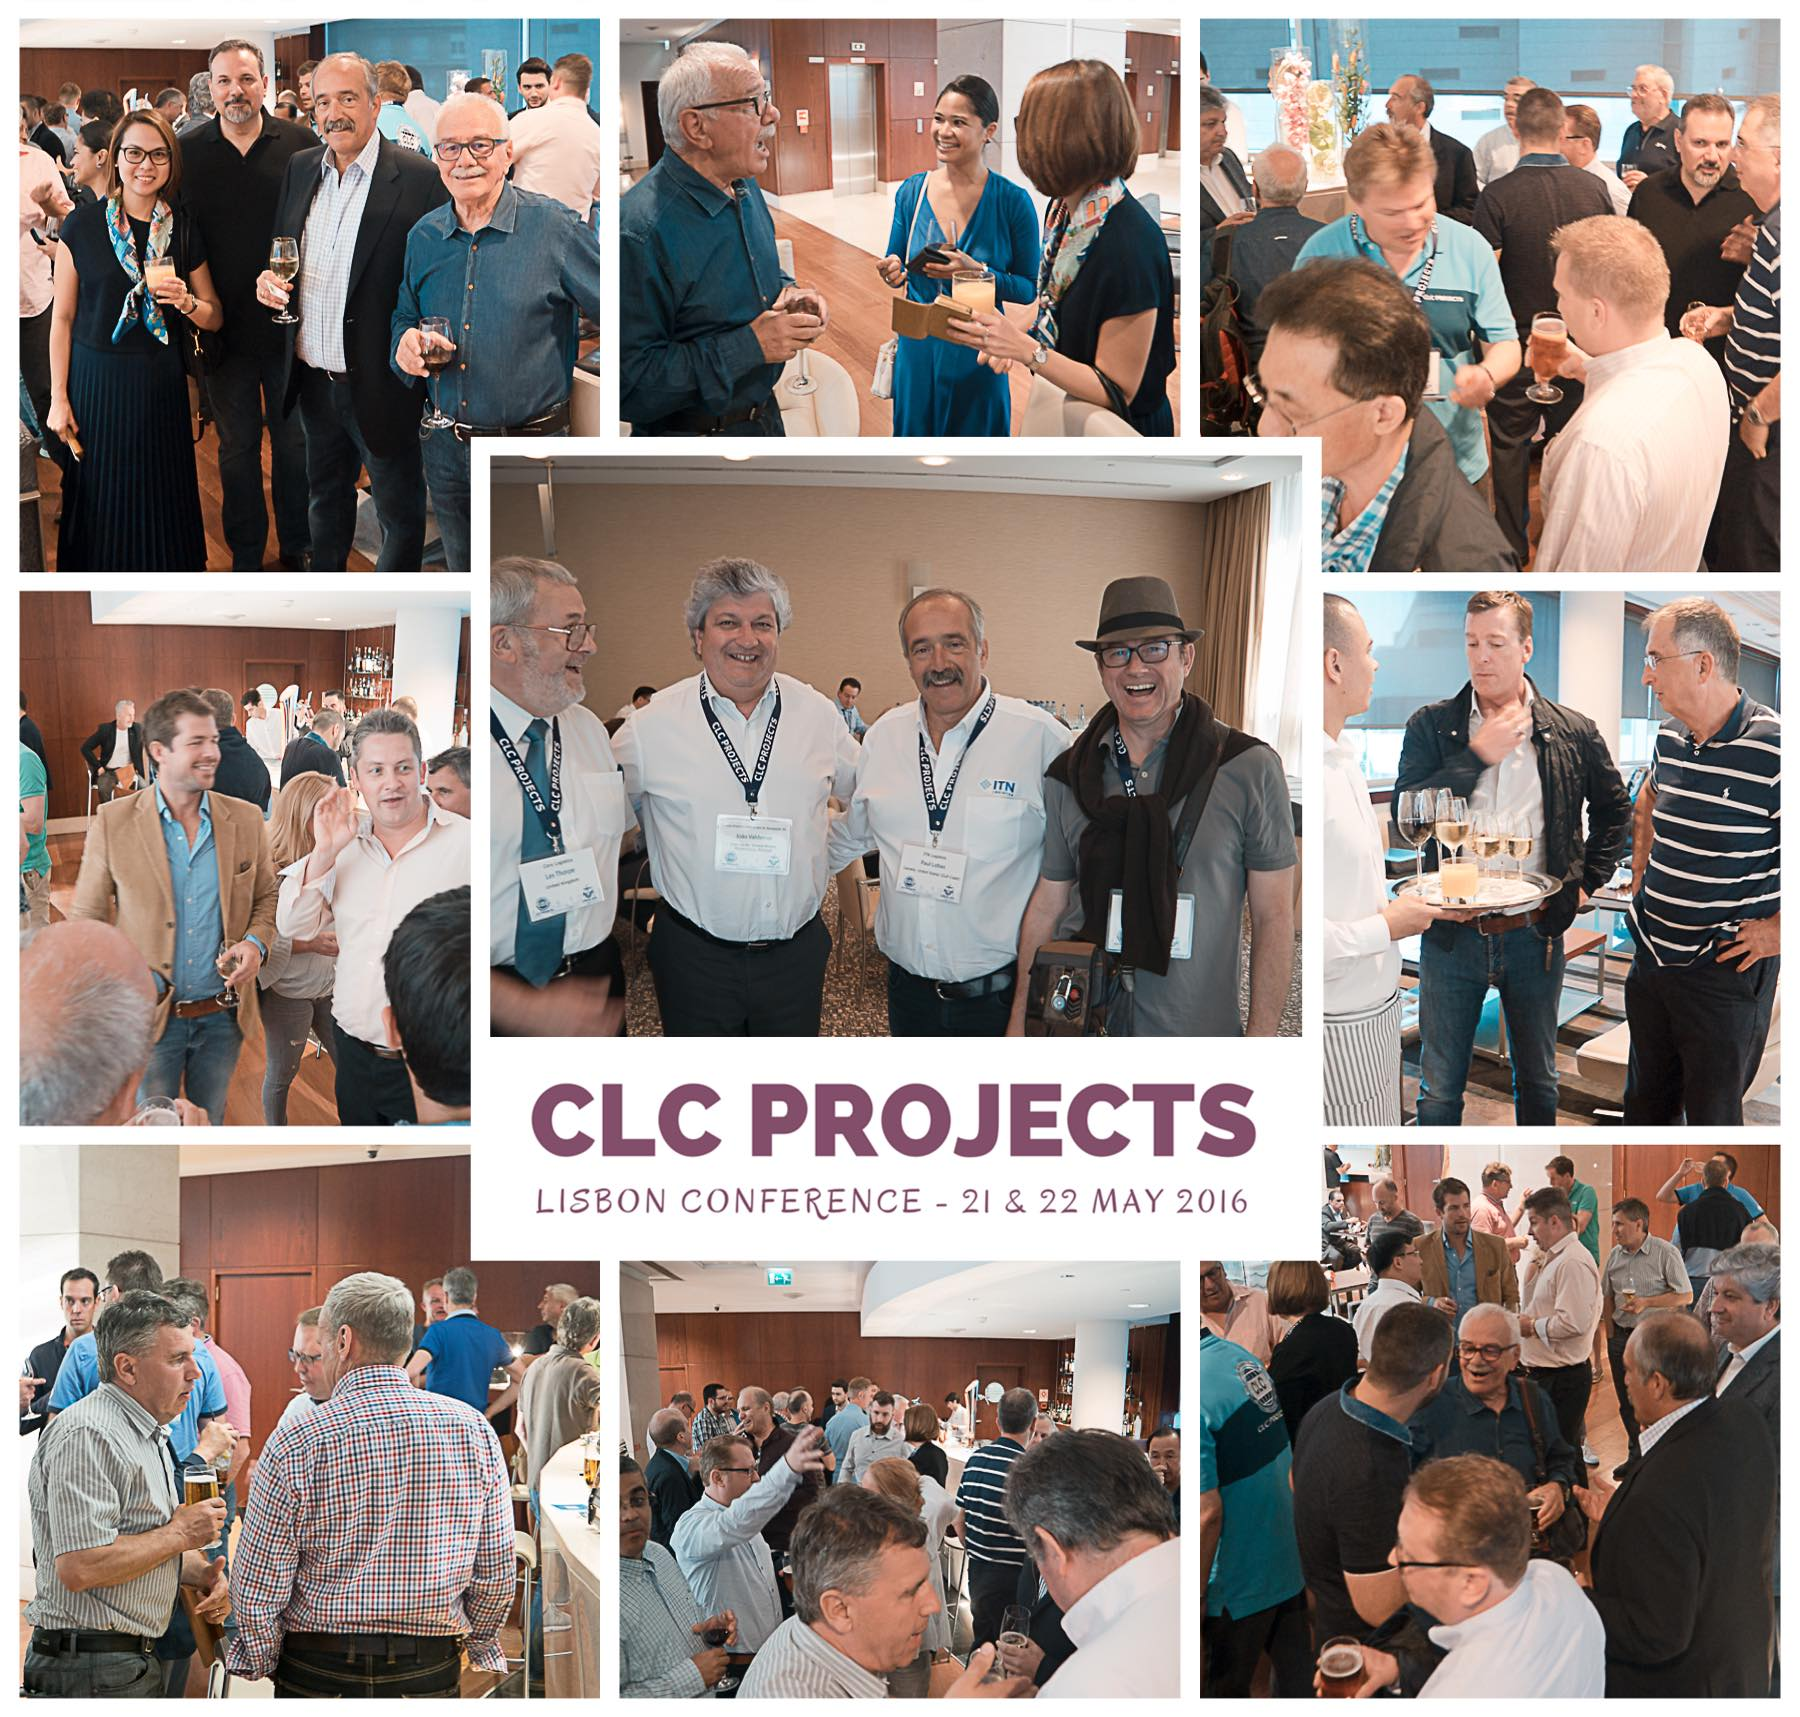 CLC Projects Lisbon Conference 2016 Collage-03